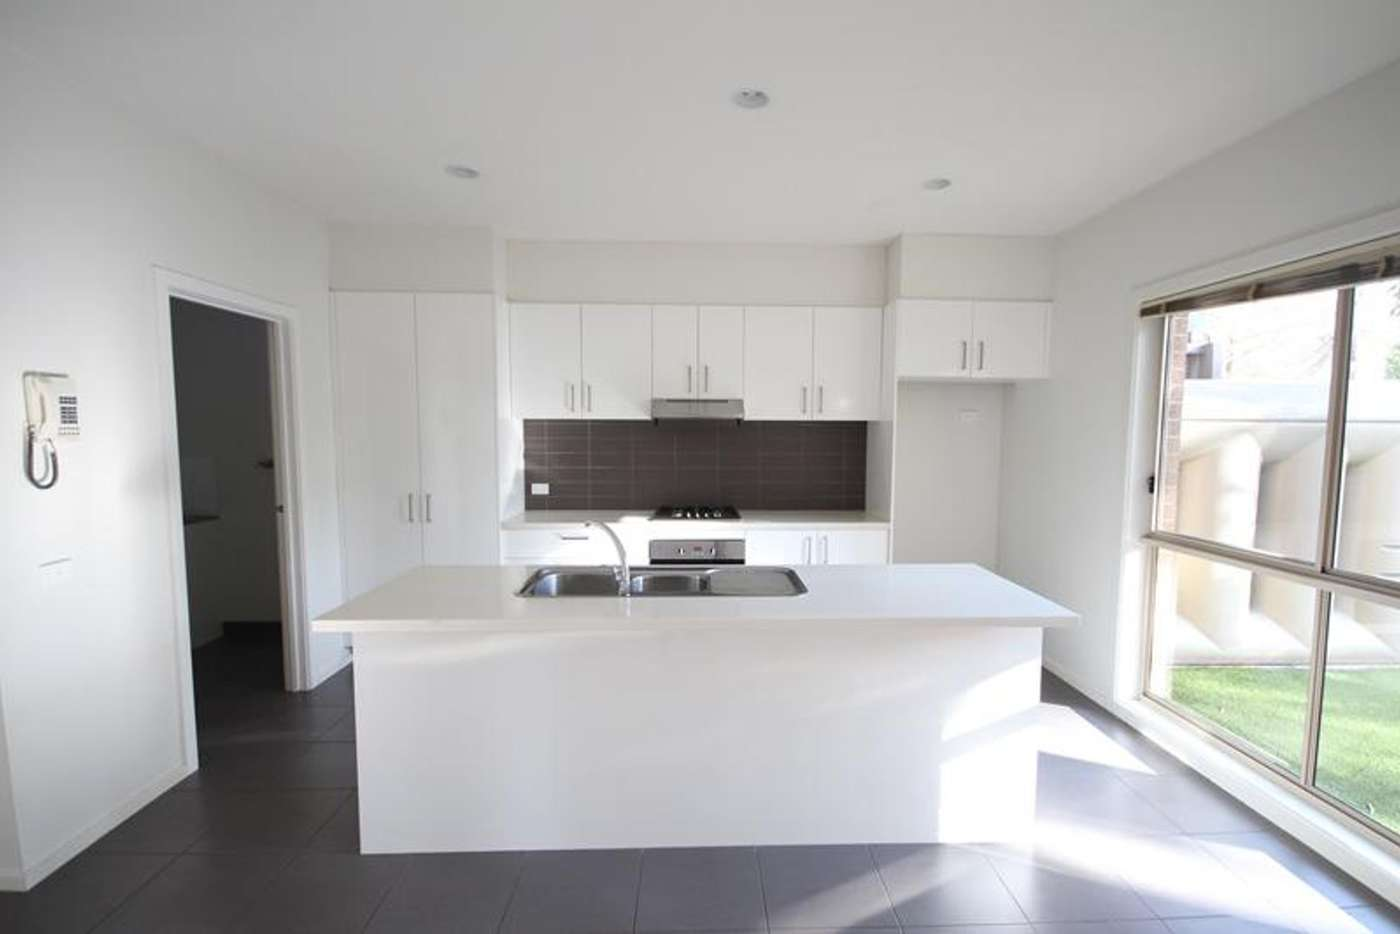 Main view of Homely townhouse listing, 4 Autumn Way, Kilsyth VIC 3137